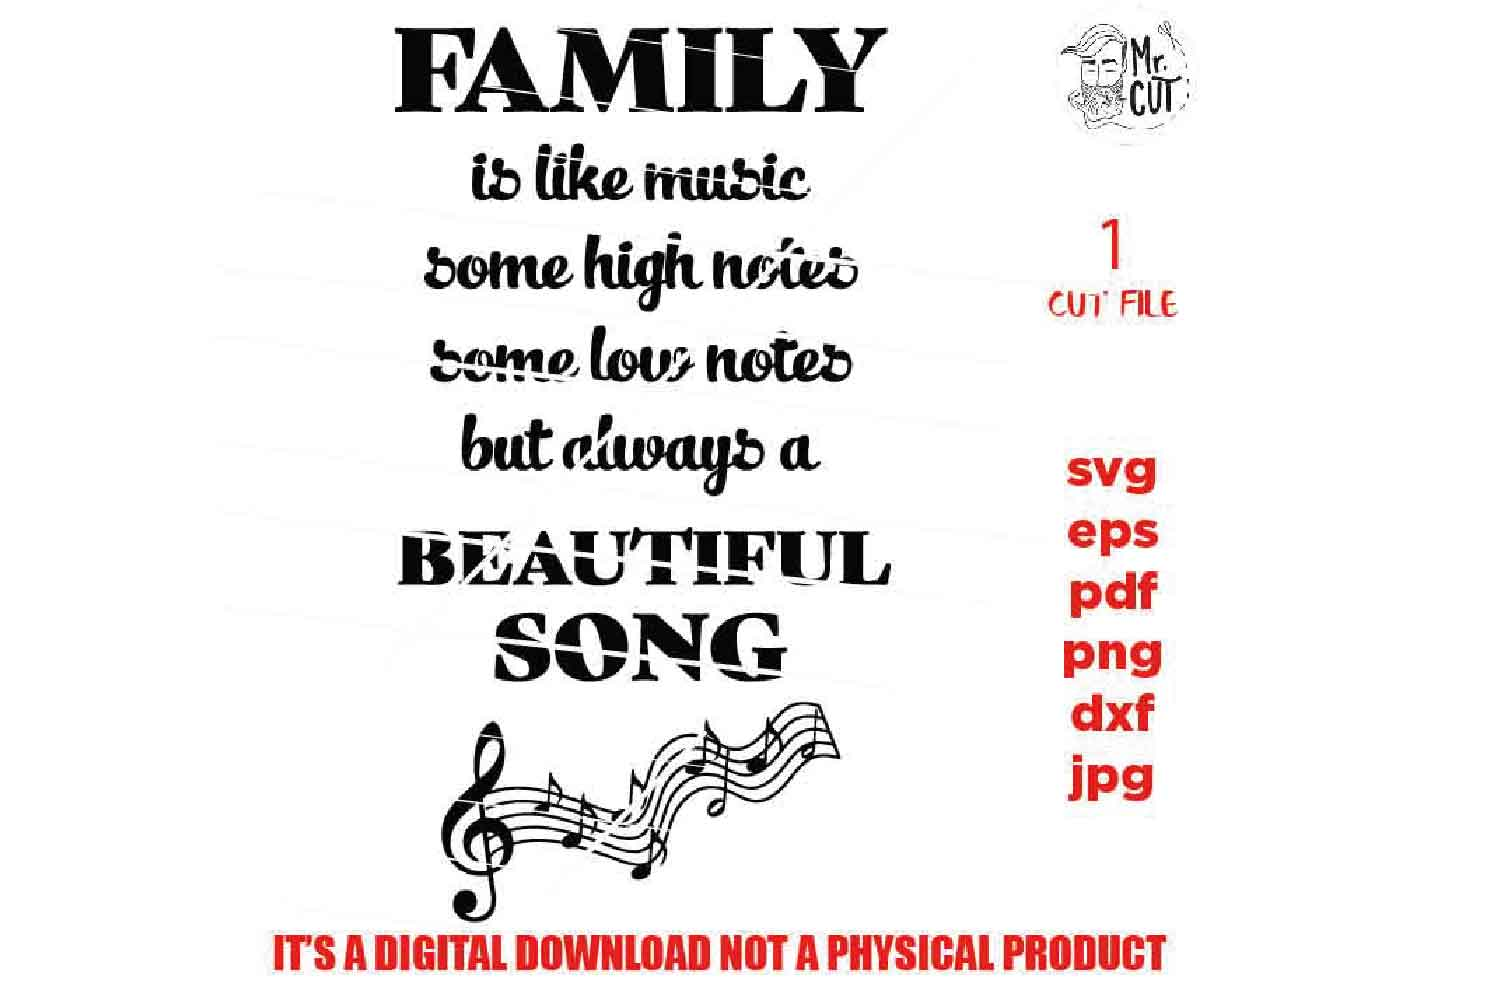 Family sign SVG, Family is like music SVG, reunion, dxf, jpg example image 2